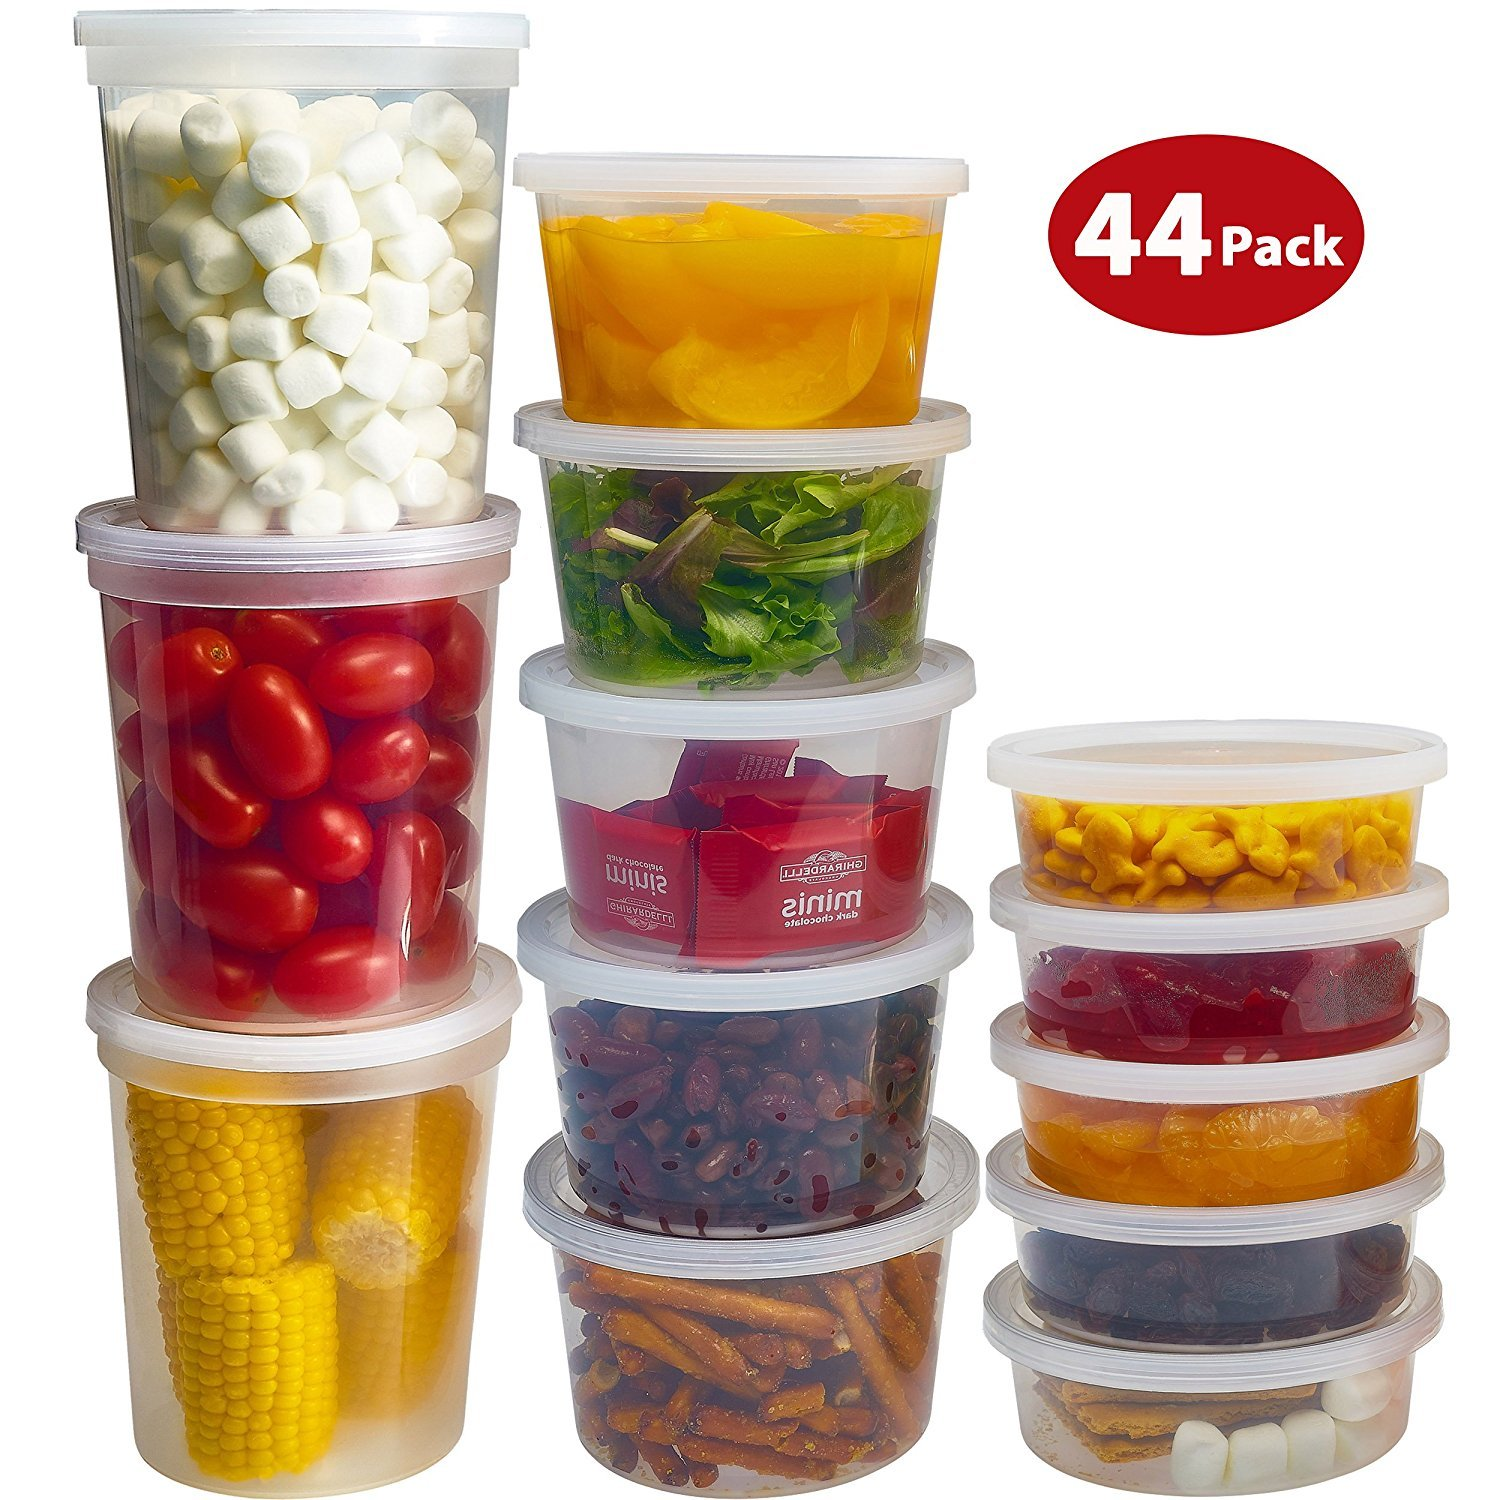 DuraHome Food Storage Containers with Lids 8oz, 16oz, 32oz Freezer Deli Cups Combo Pack, 44 Sets BPA-Free Leakproof Round Clear Takeout Container Meal Prep Microwavable (44 Sets - Mixed Sizes) 01671